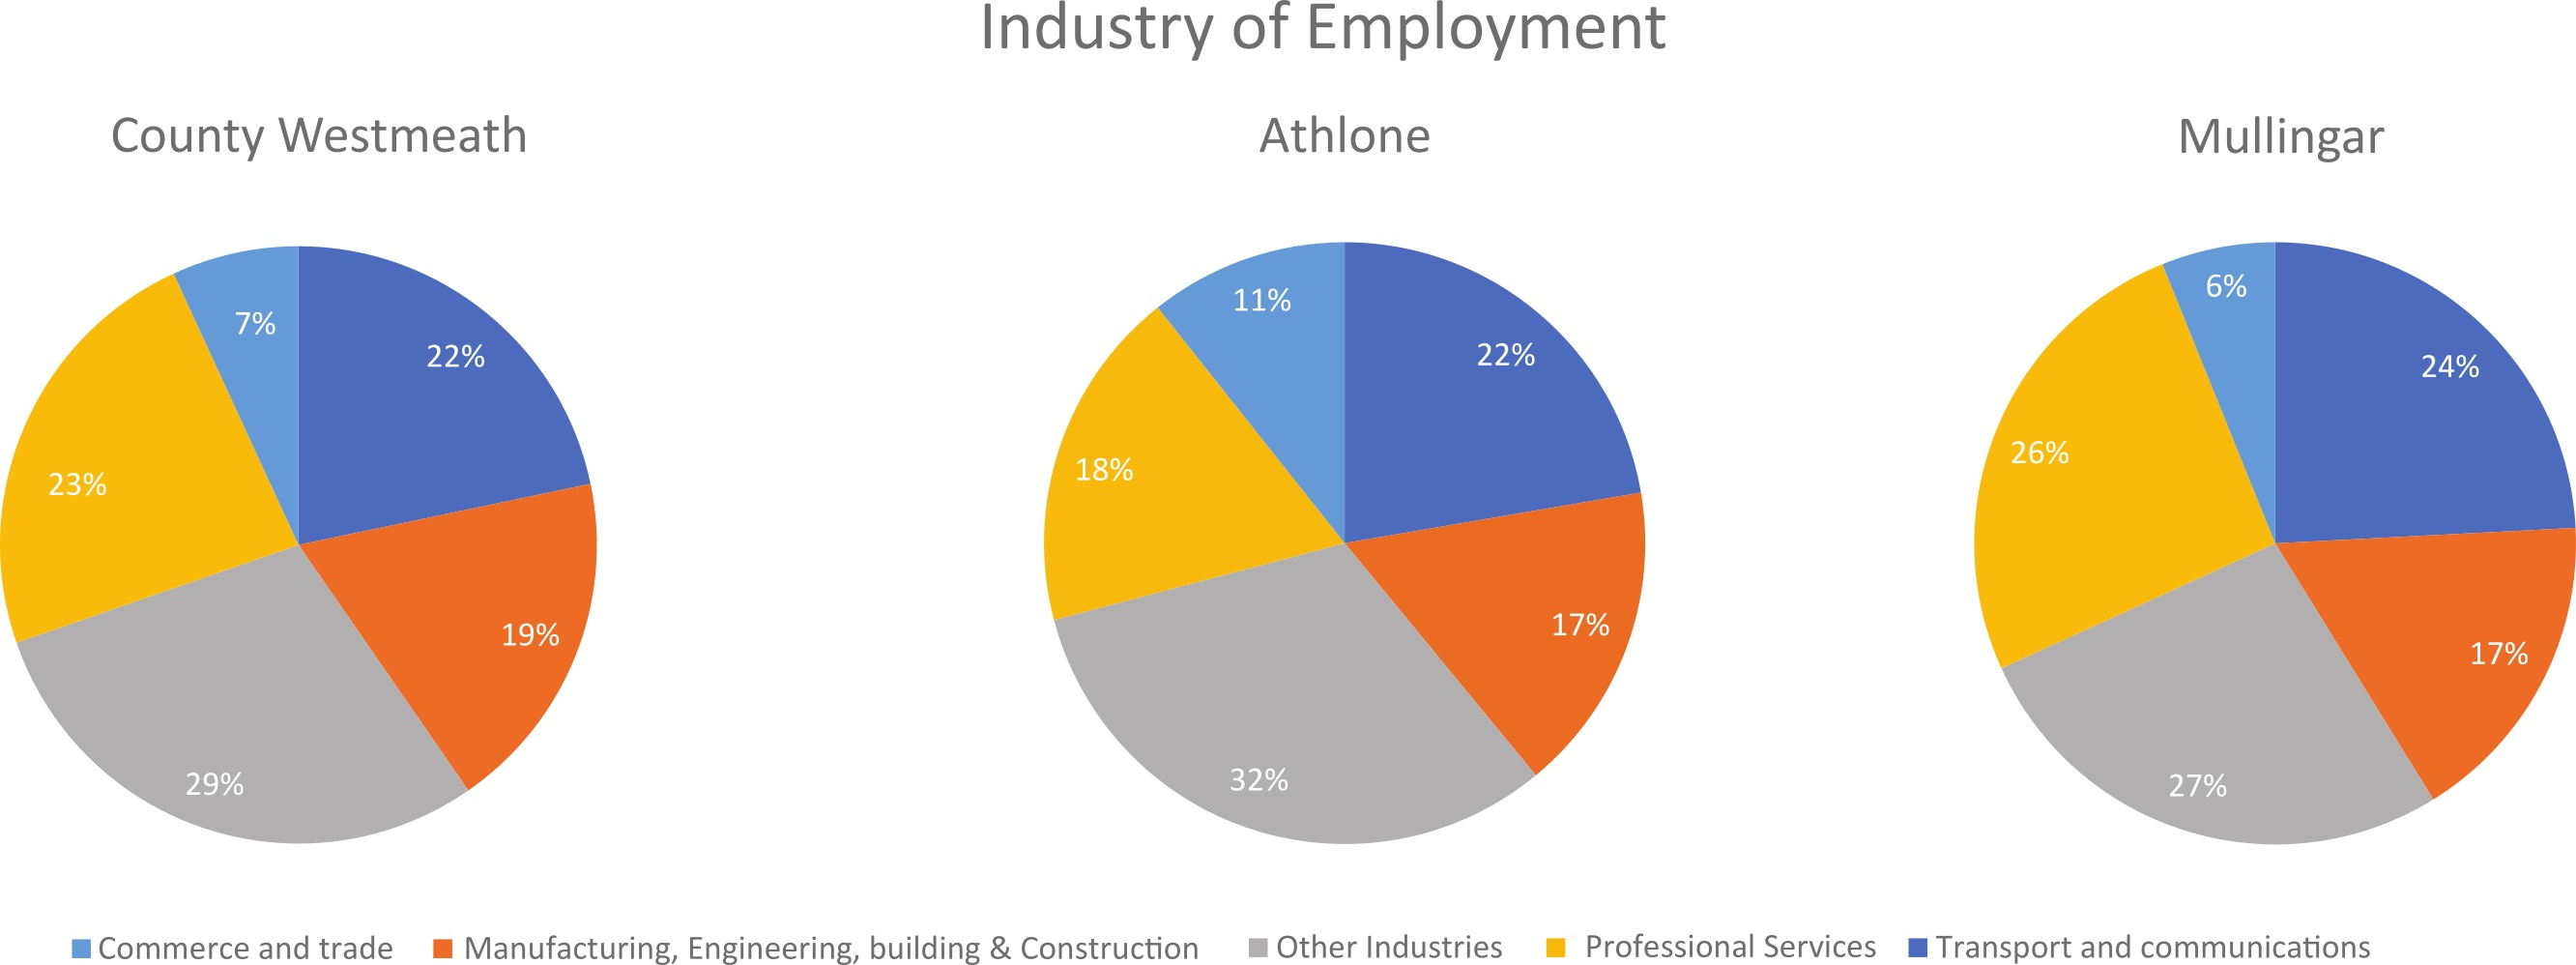 Figure 5.3 Employment by industry for Westmeath, Athlone and Mullingar